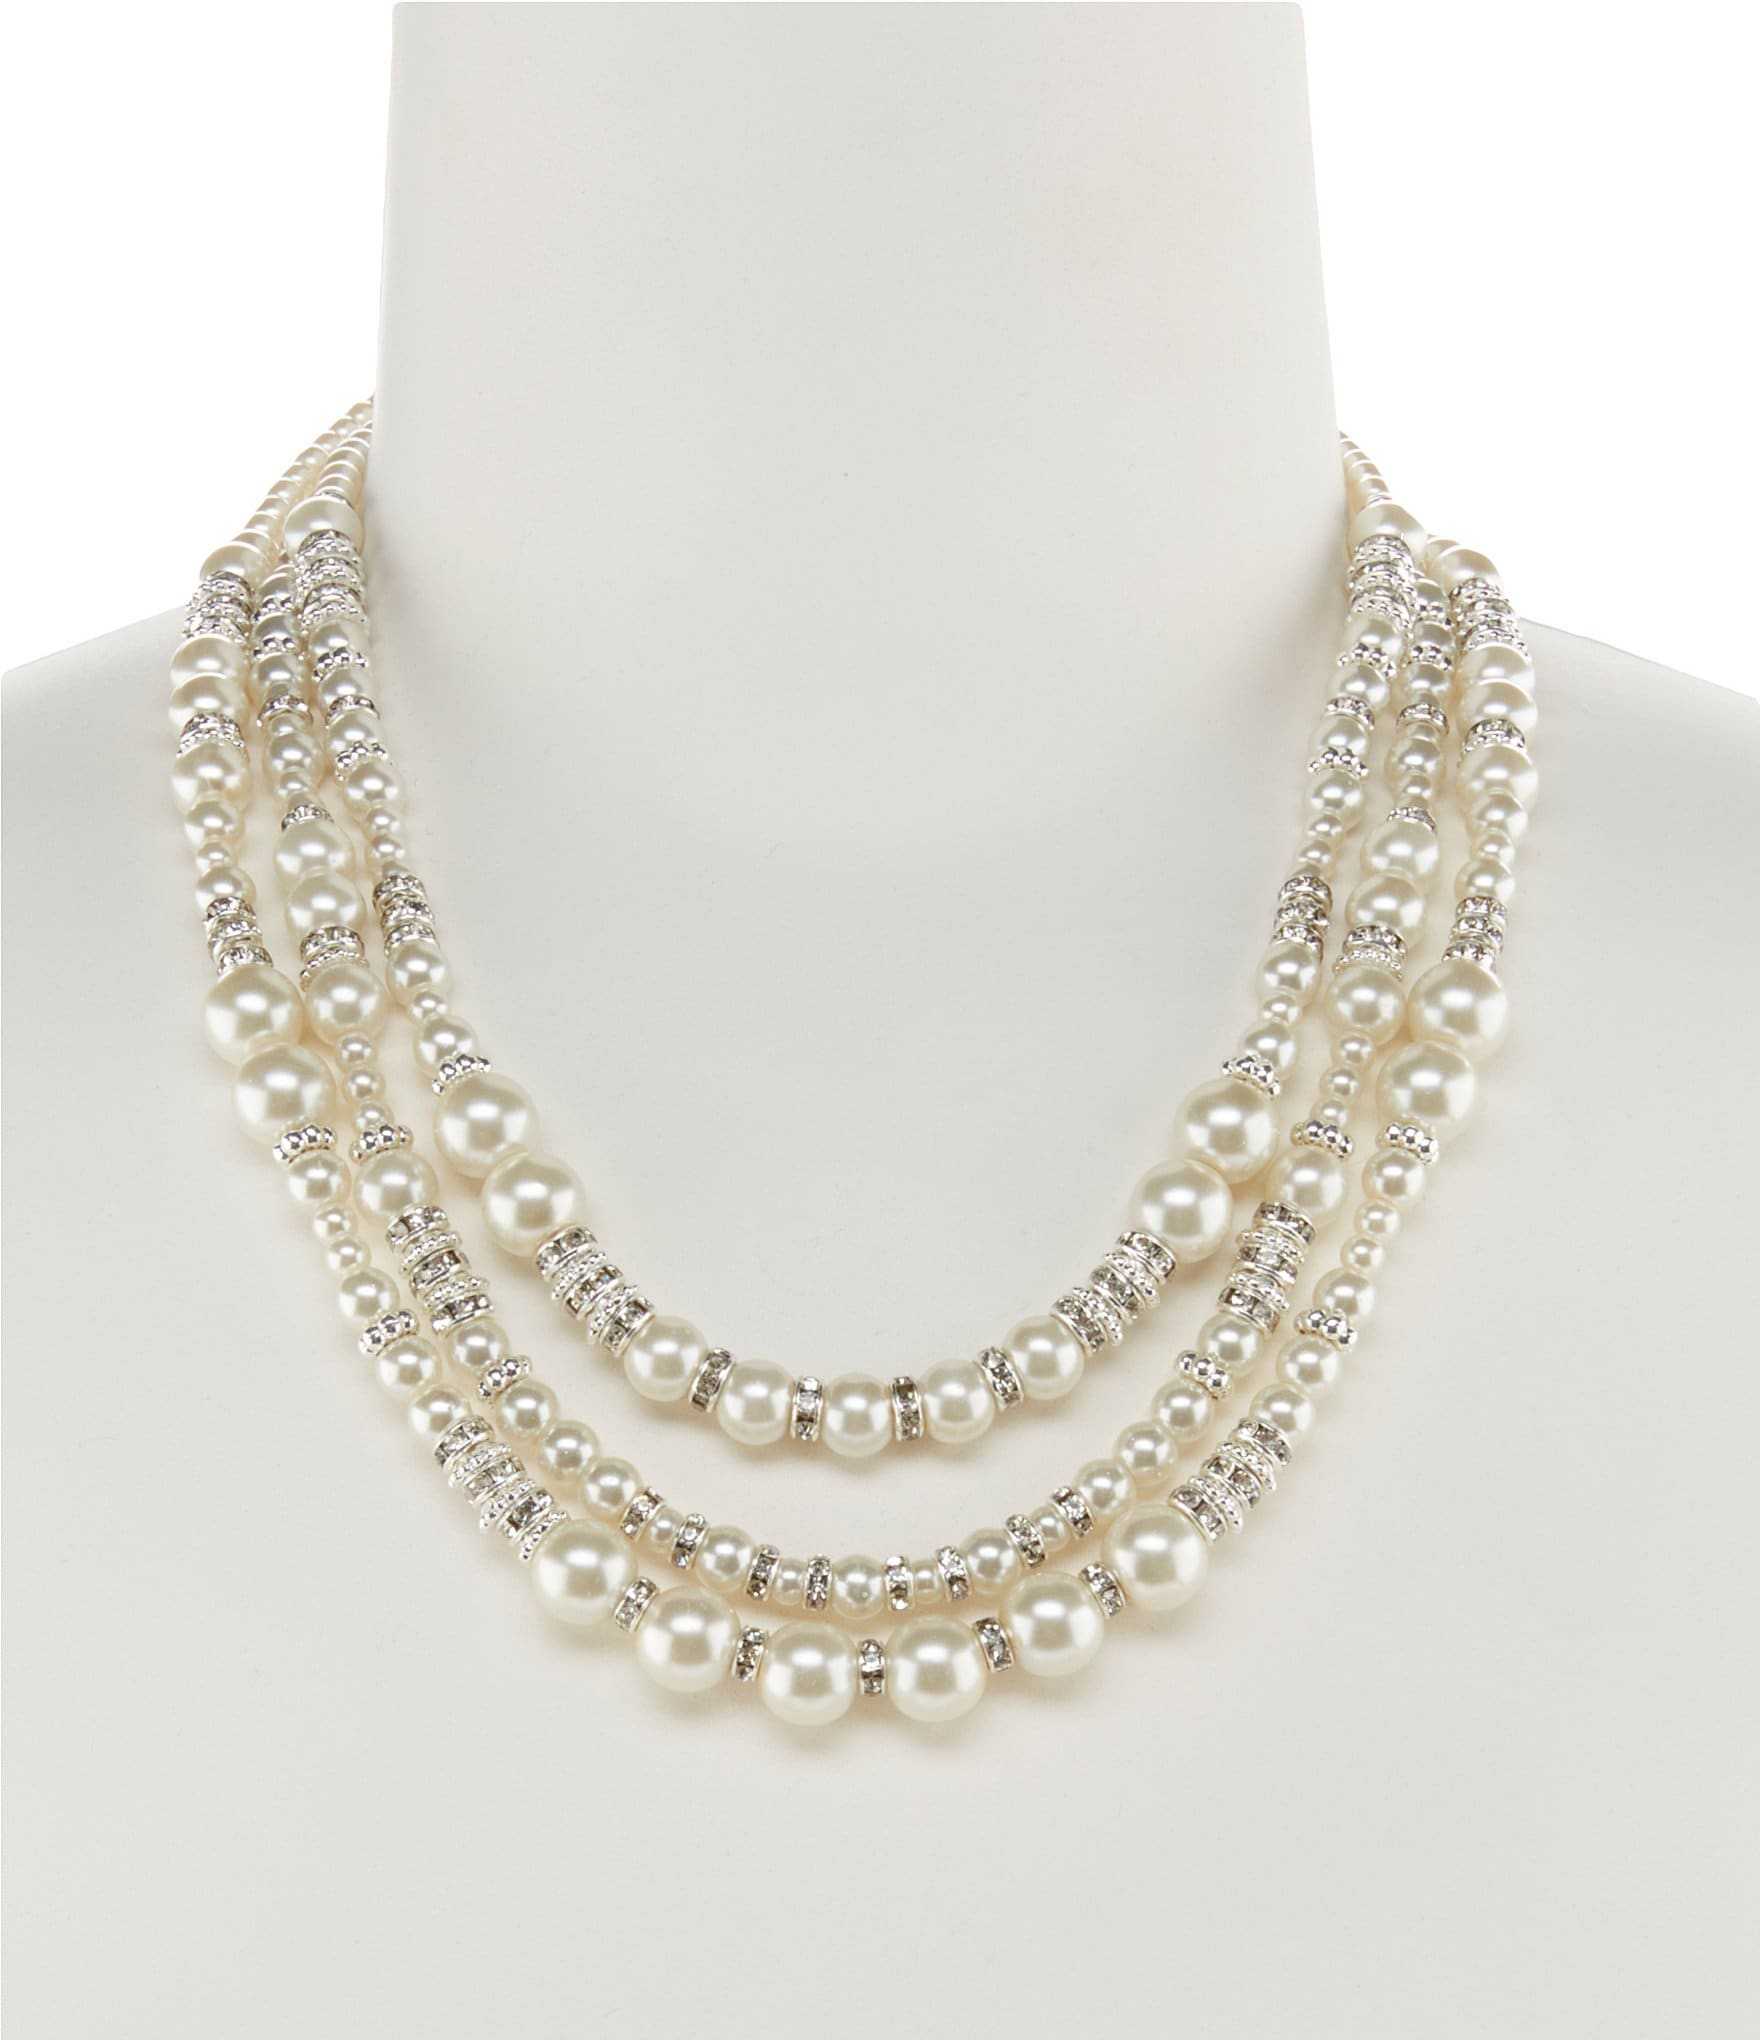 june sablan shop doubled classic main necklace pearl inspired designs chanel design faux